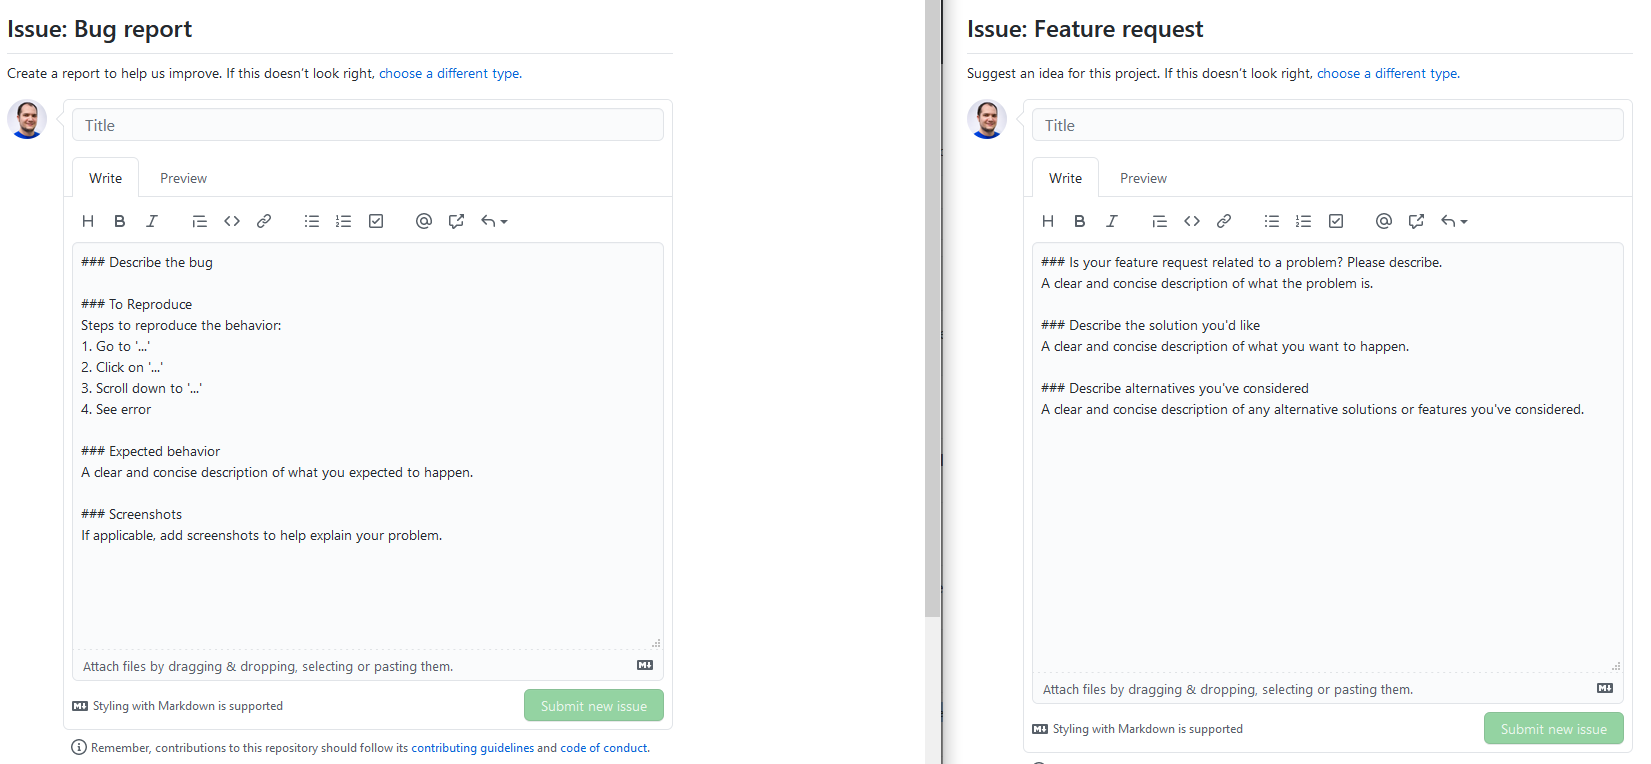 Submit bug report or feature request